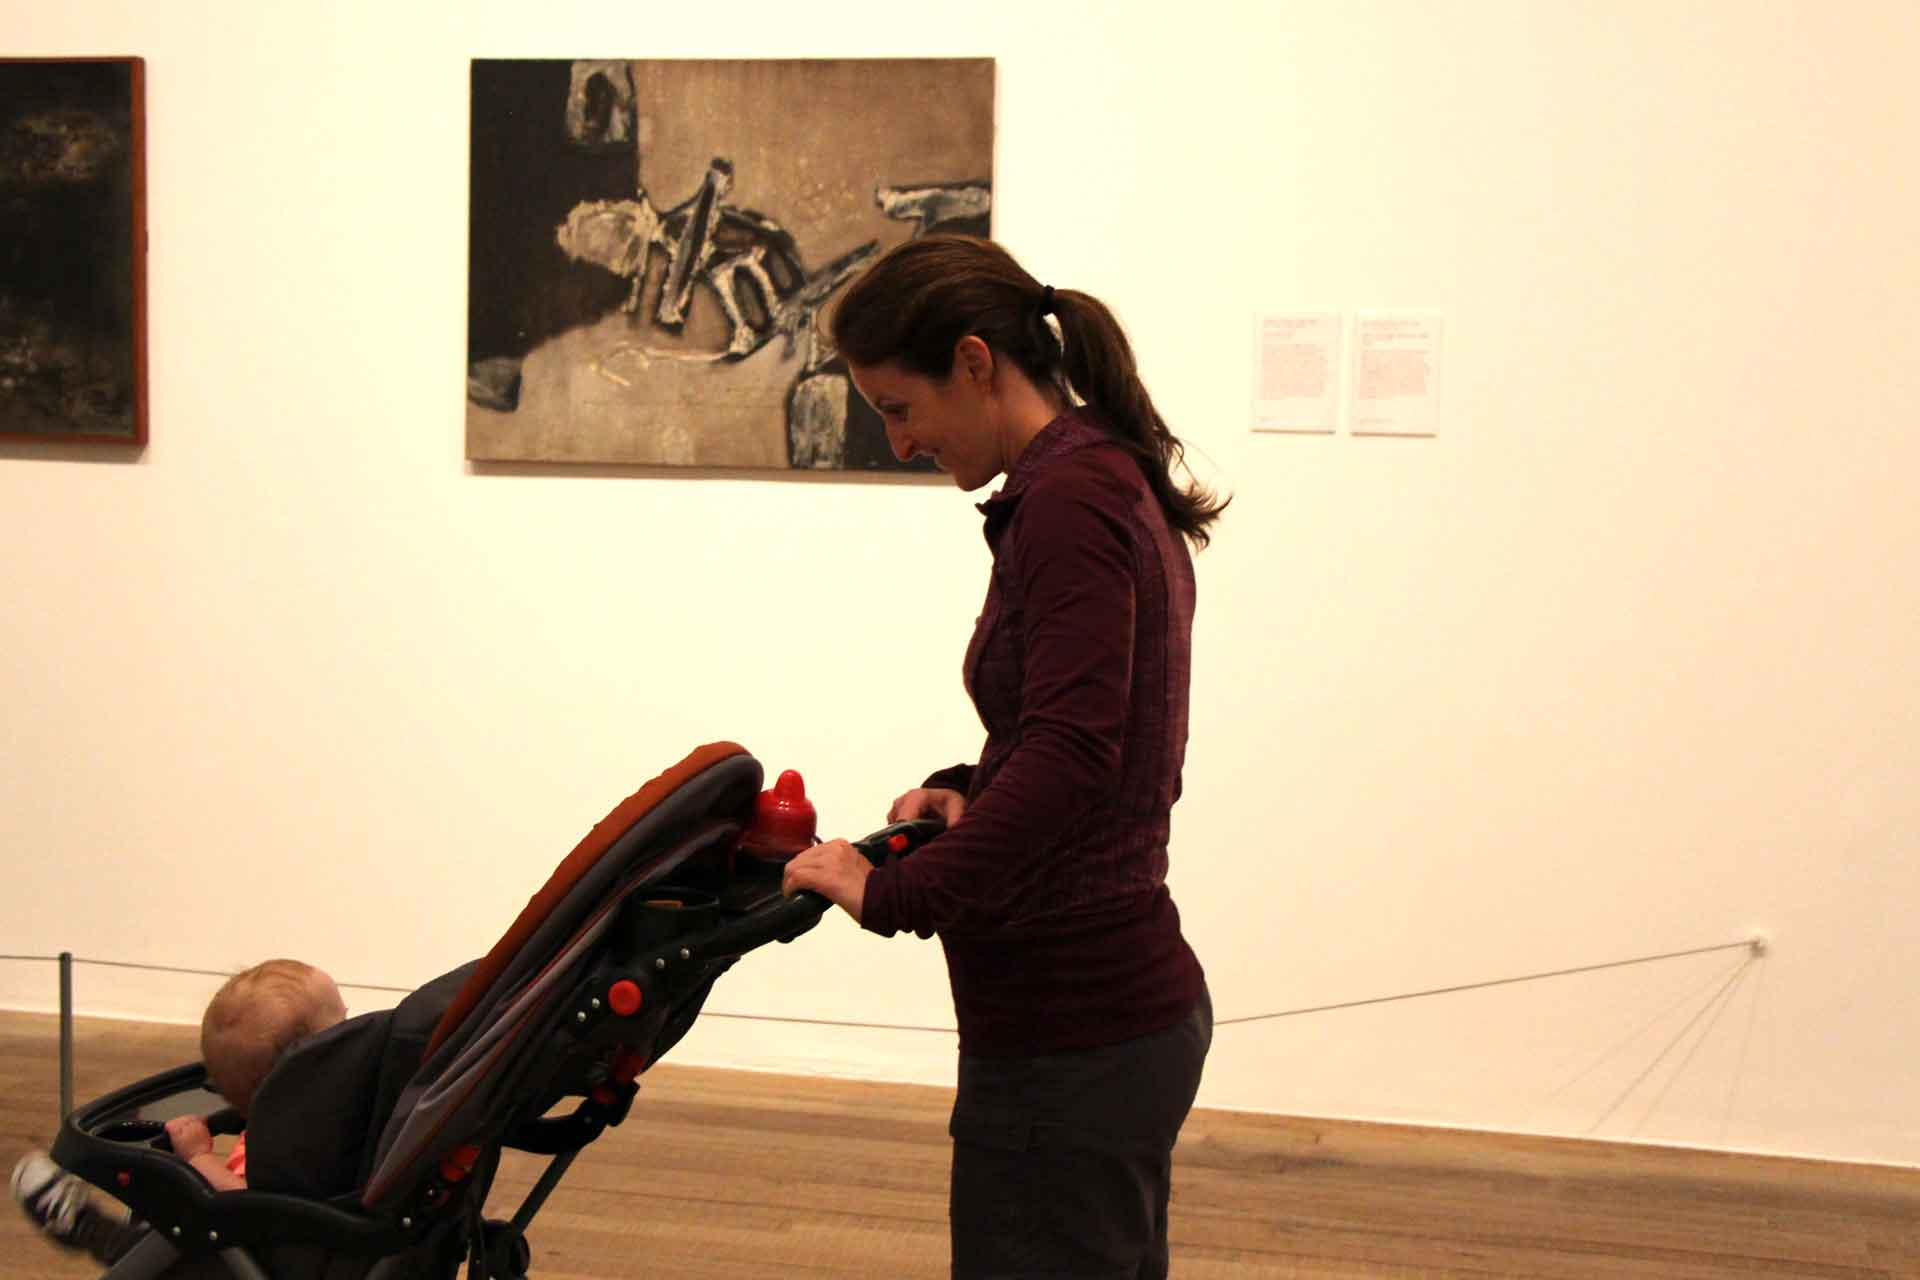 Tate Modern in London with Stroller